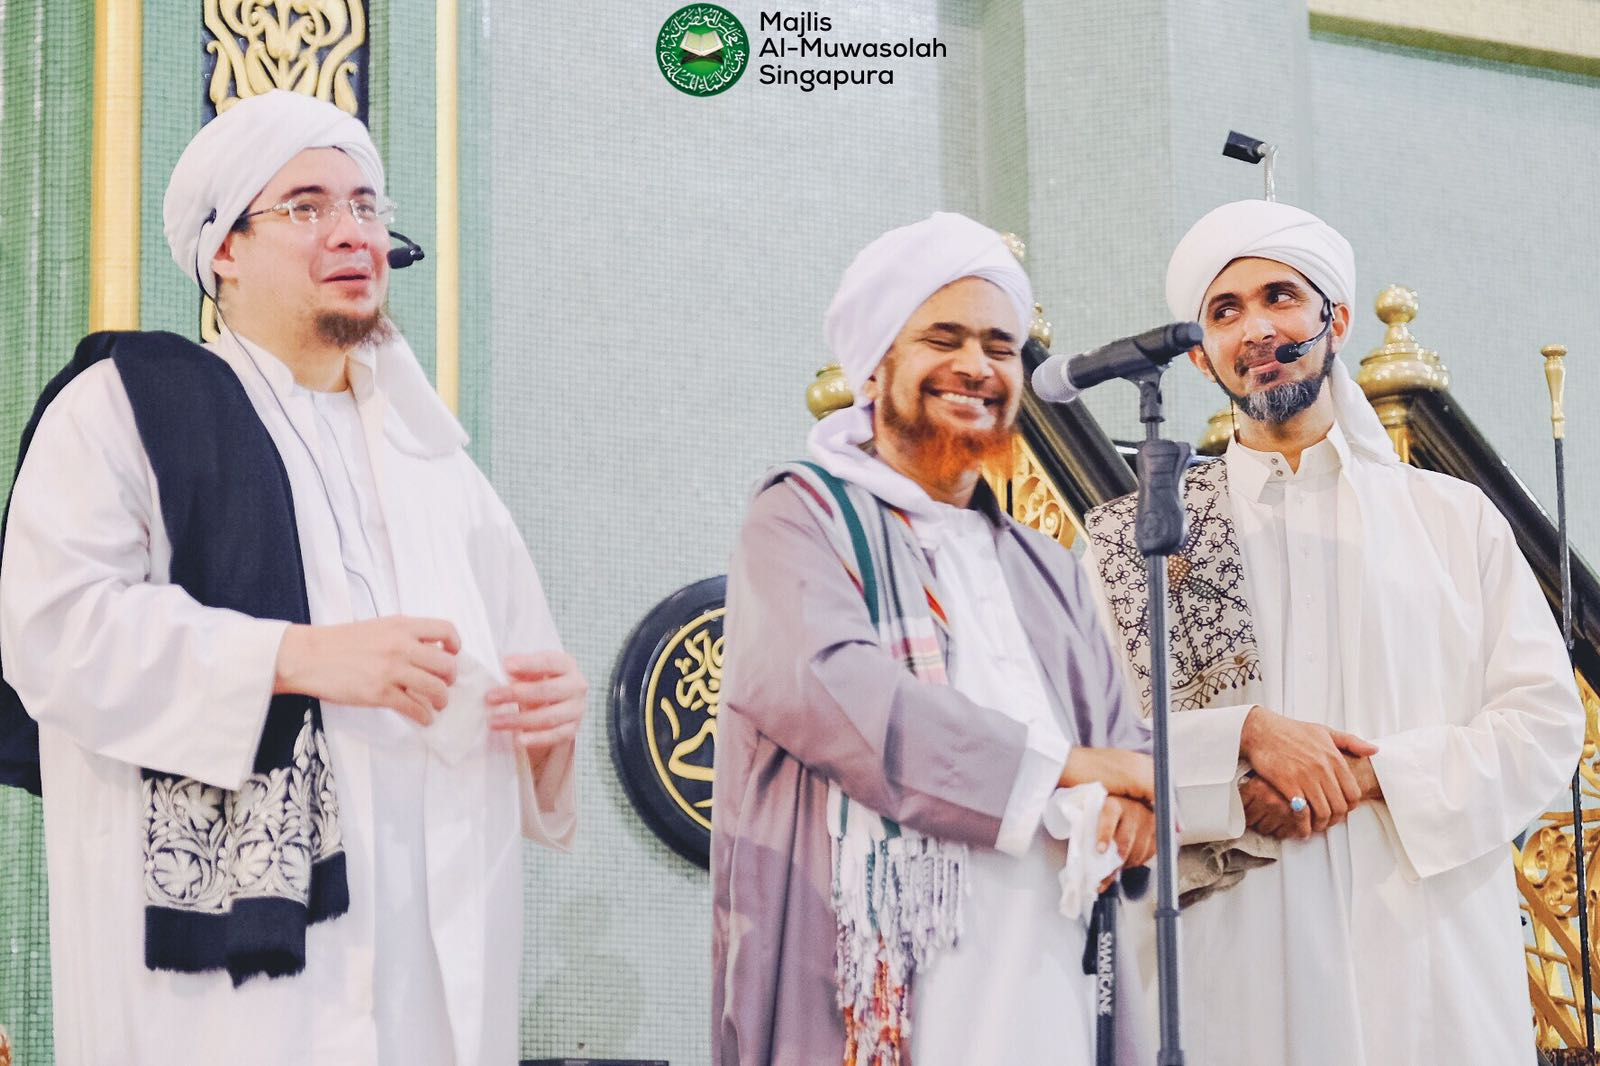 Habib Umar's riveting talk at Sultan Mosque: Night of Mahabbah November 2016